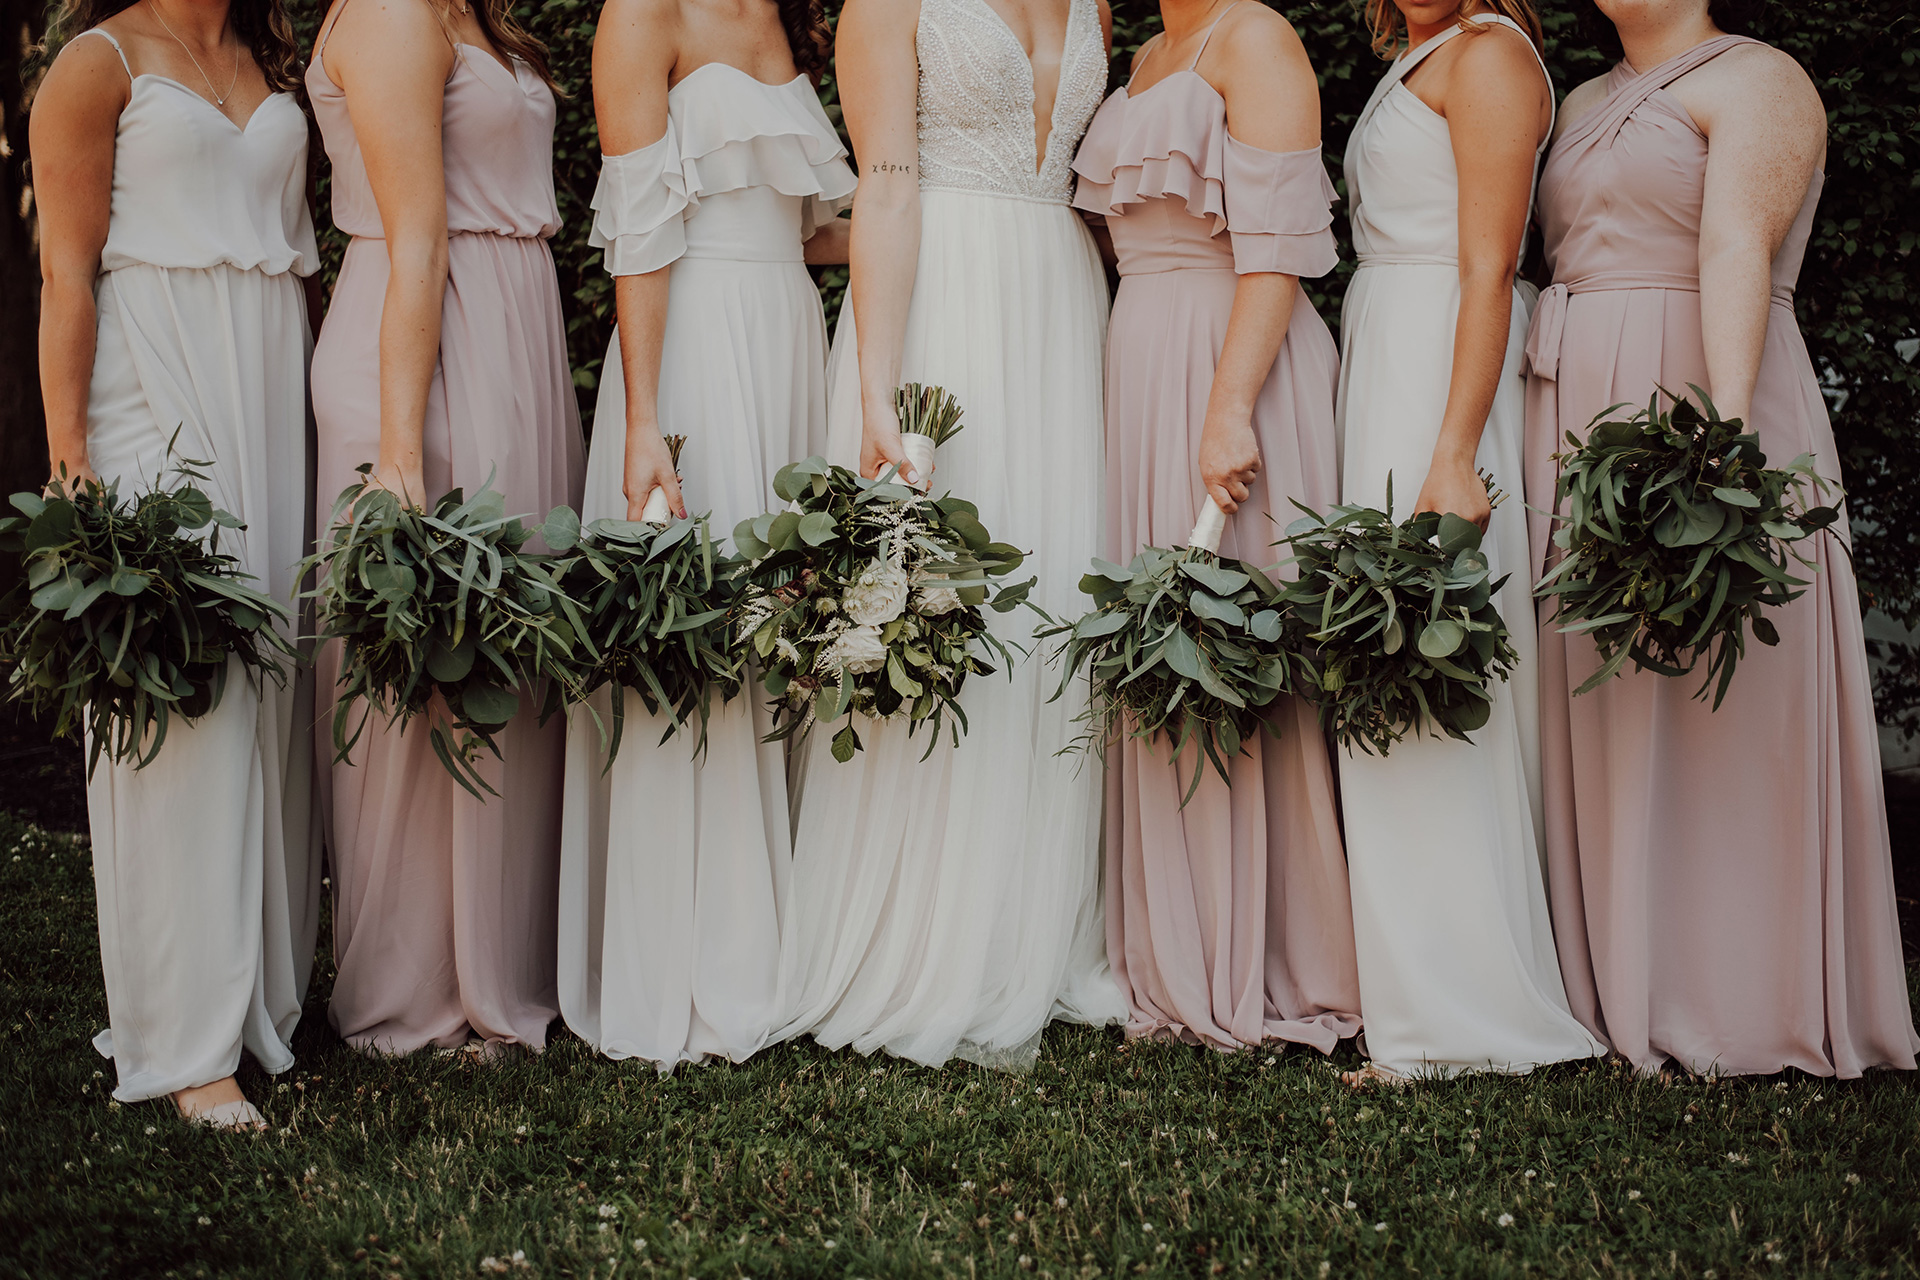 Bride standing with her bridesmaids with bouquets